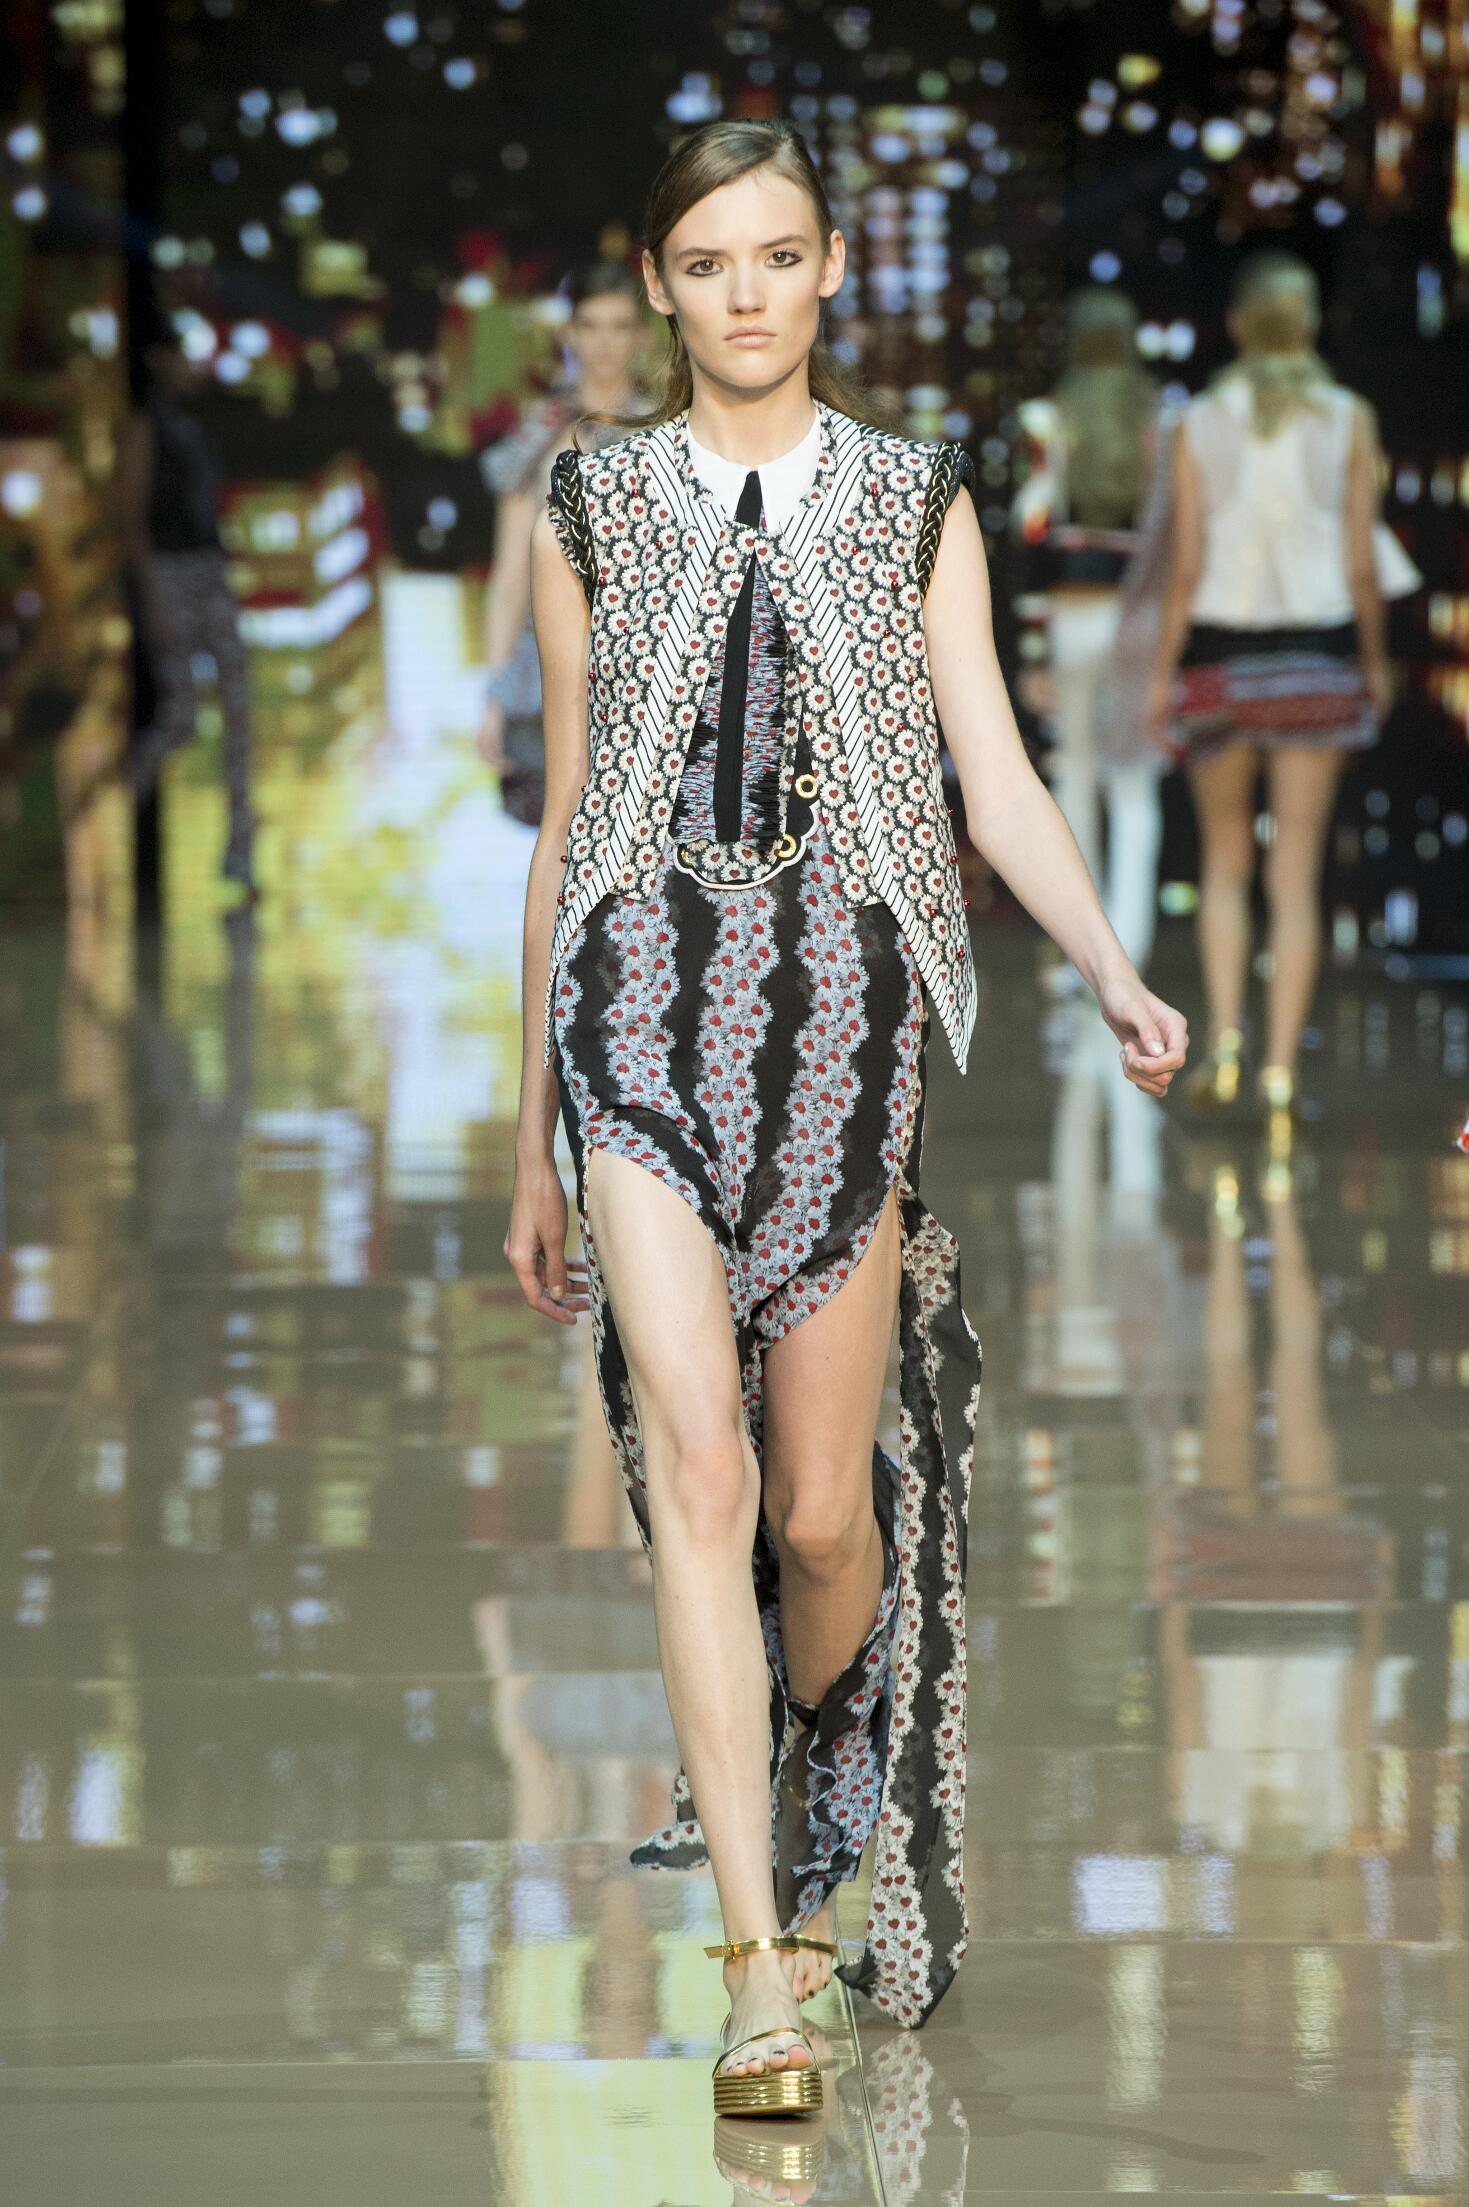 Just Cavalli SS 2015 Womenswear